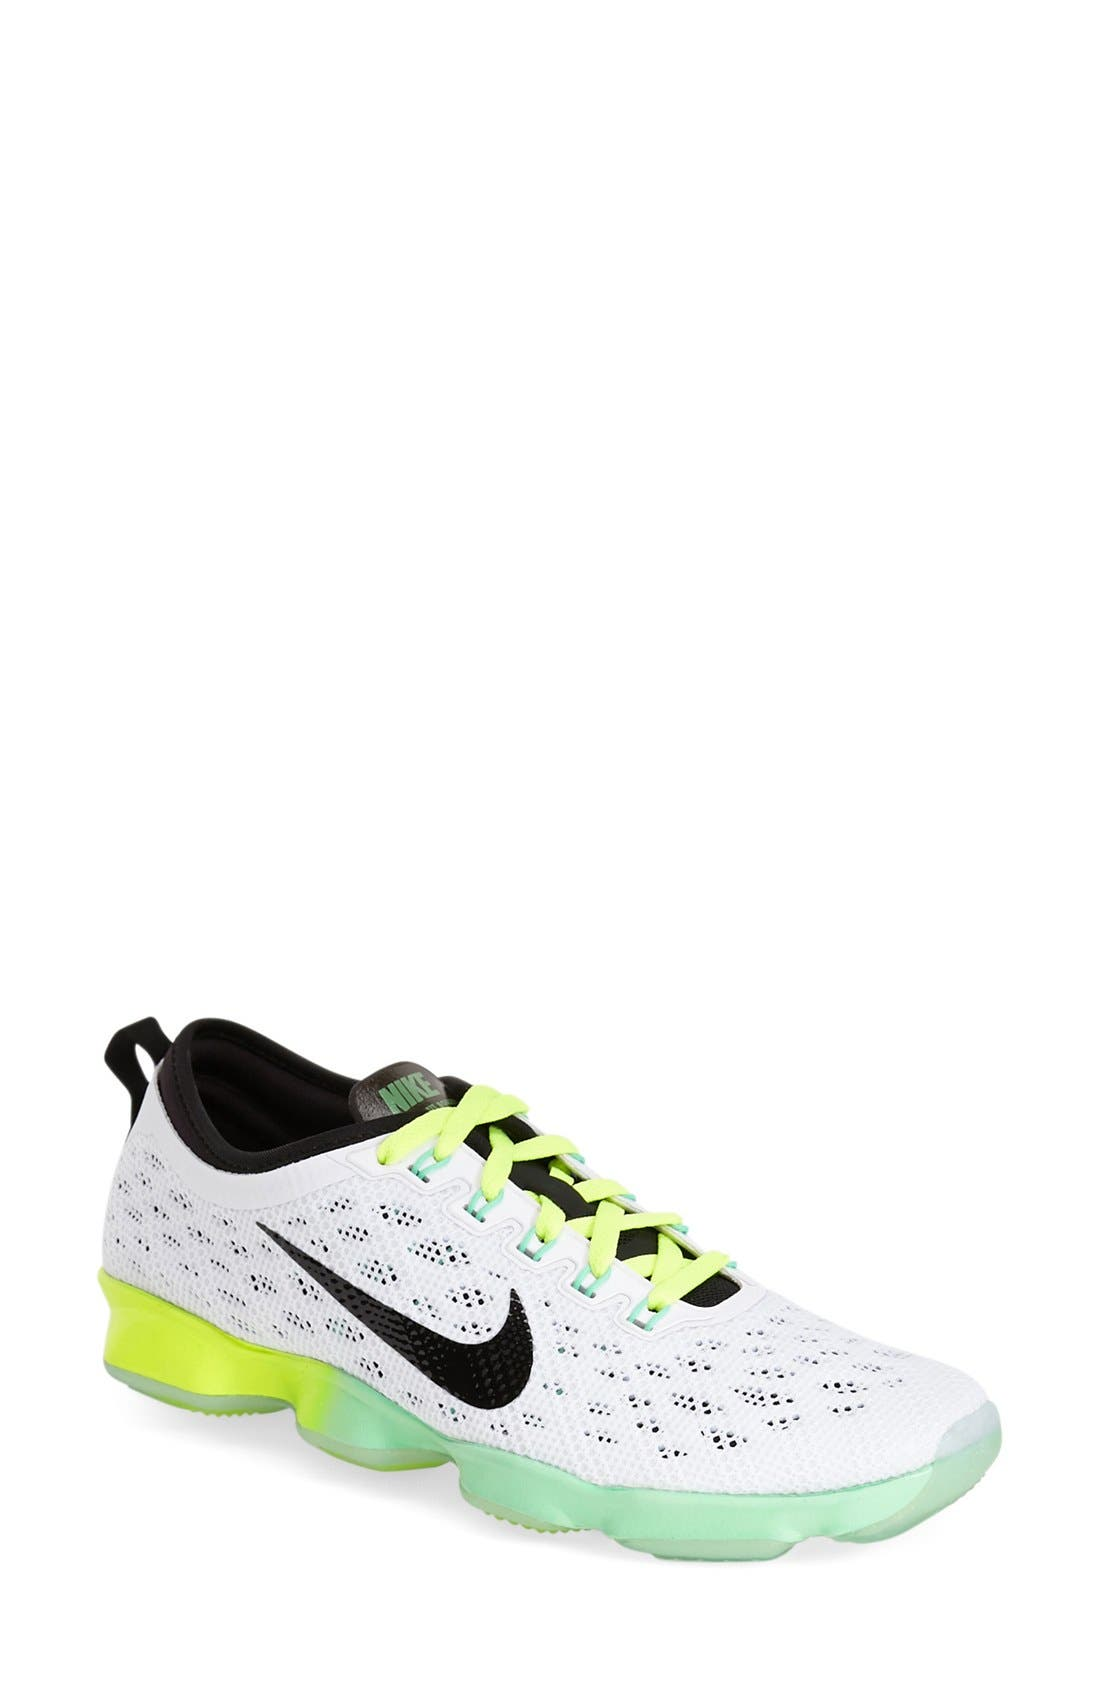 Alternate Image 1 Selected - Nike 'Zoom Fit Agility' Training Shoe (Women)